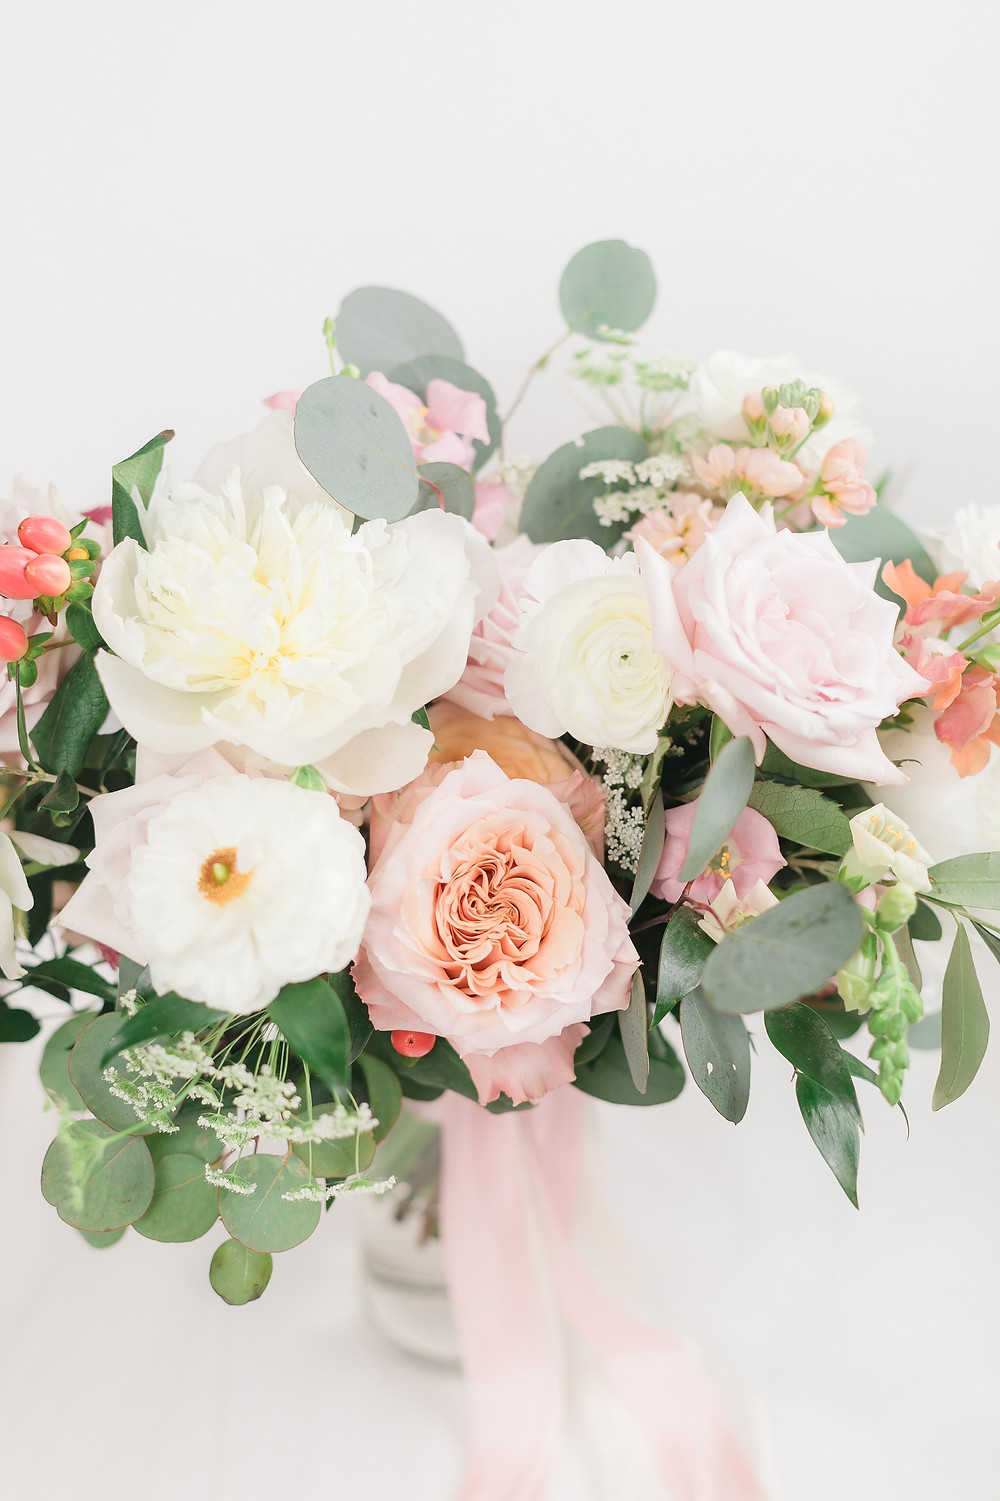 Studio Bloom Iowa bridal bouquet detail in pink and peach with peonies, roses, ranunculus, snapdragons, berries, and eucalyptus